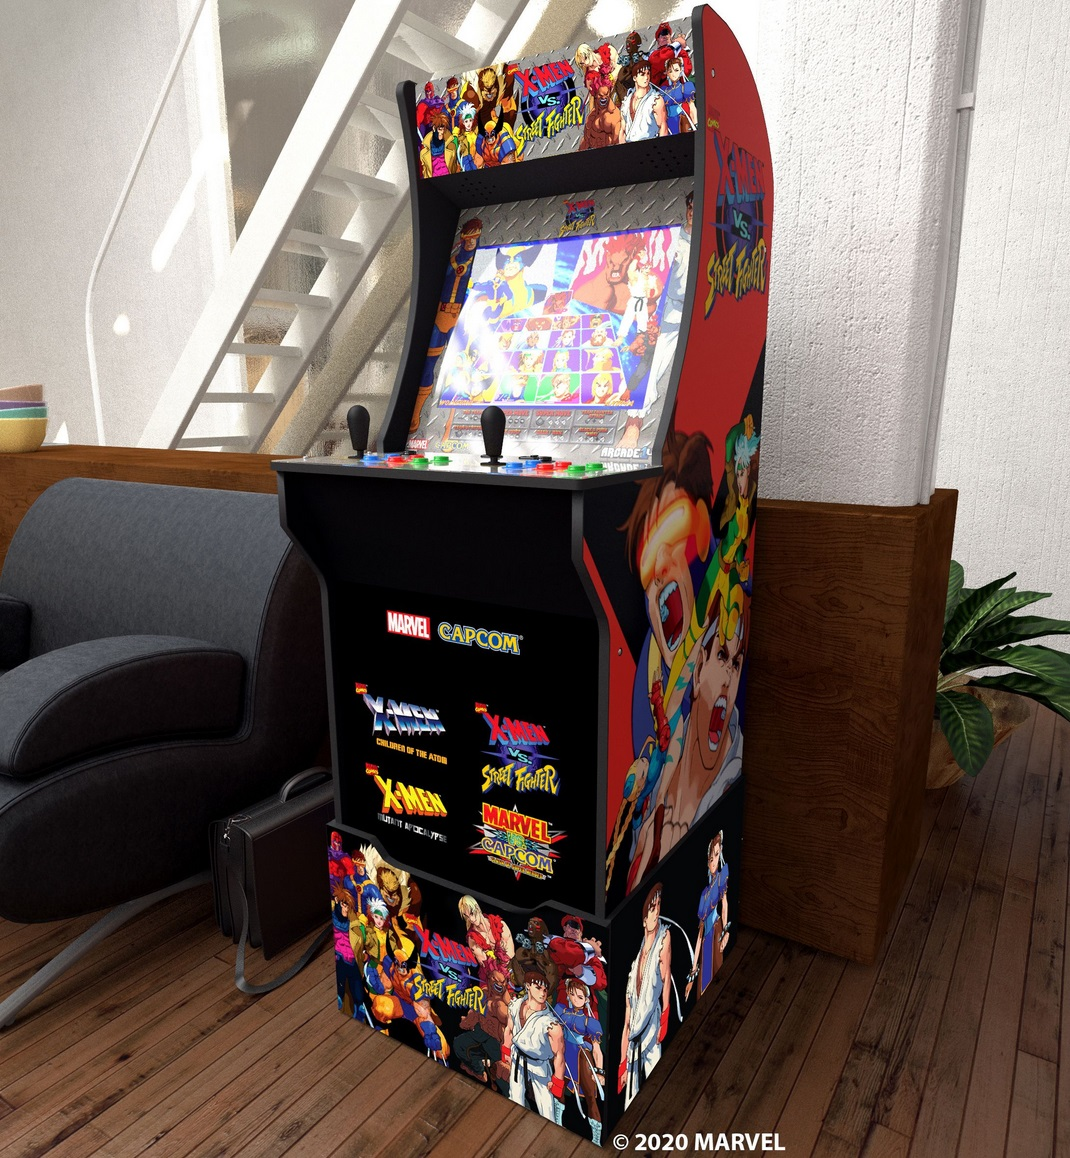 The MS. PAC-MAN and Vs Capcom arcade cabinets have been long-awaited and anticipated additions to the Arcade1Up lineup.